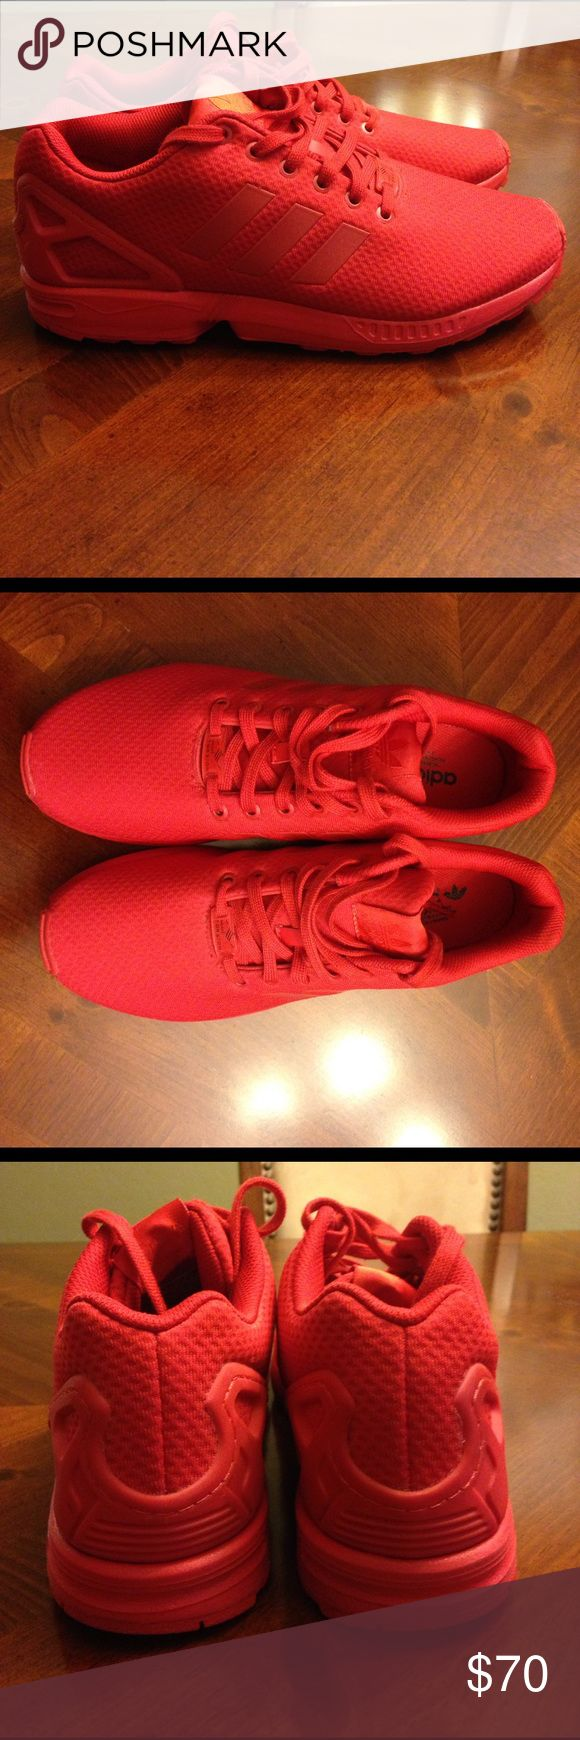 Adidas All Red ZX Flux Adidas all red ZX Flux. In very good condition. Only worn once. Comes with original box as well. Adidas Shoes Sneakers